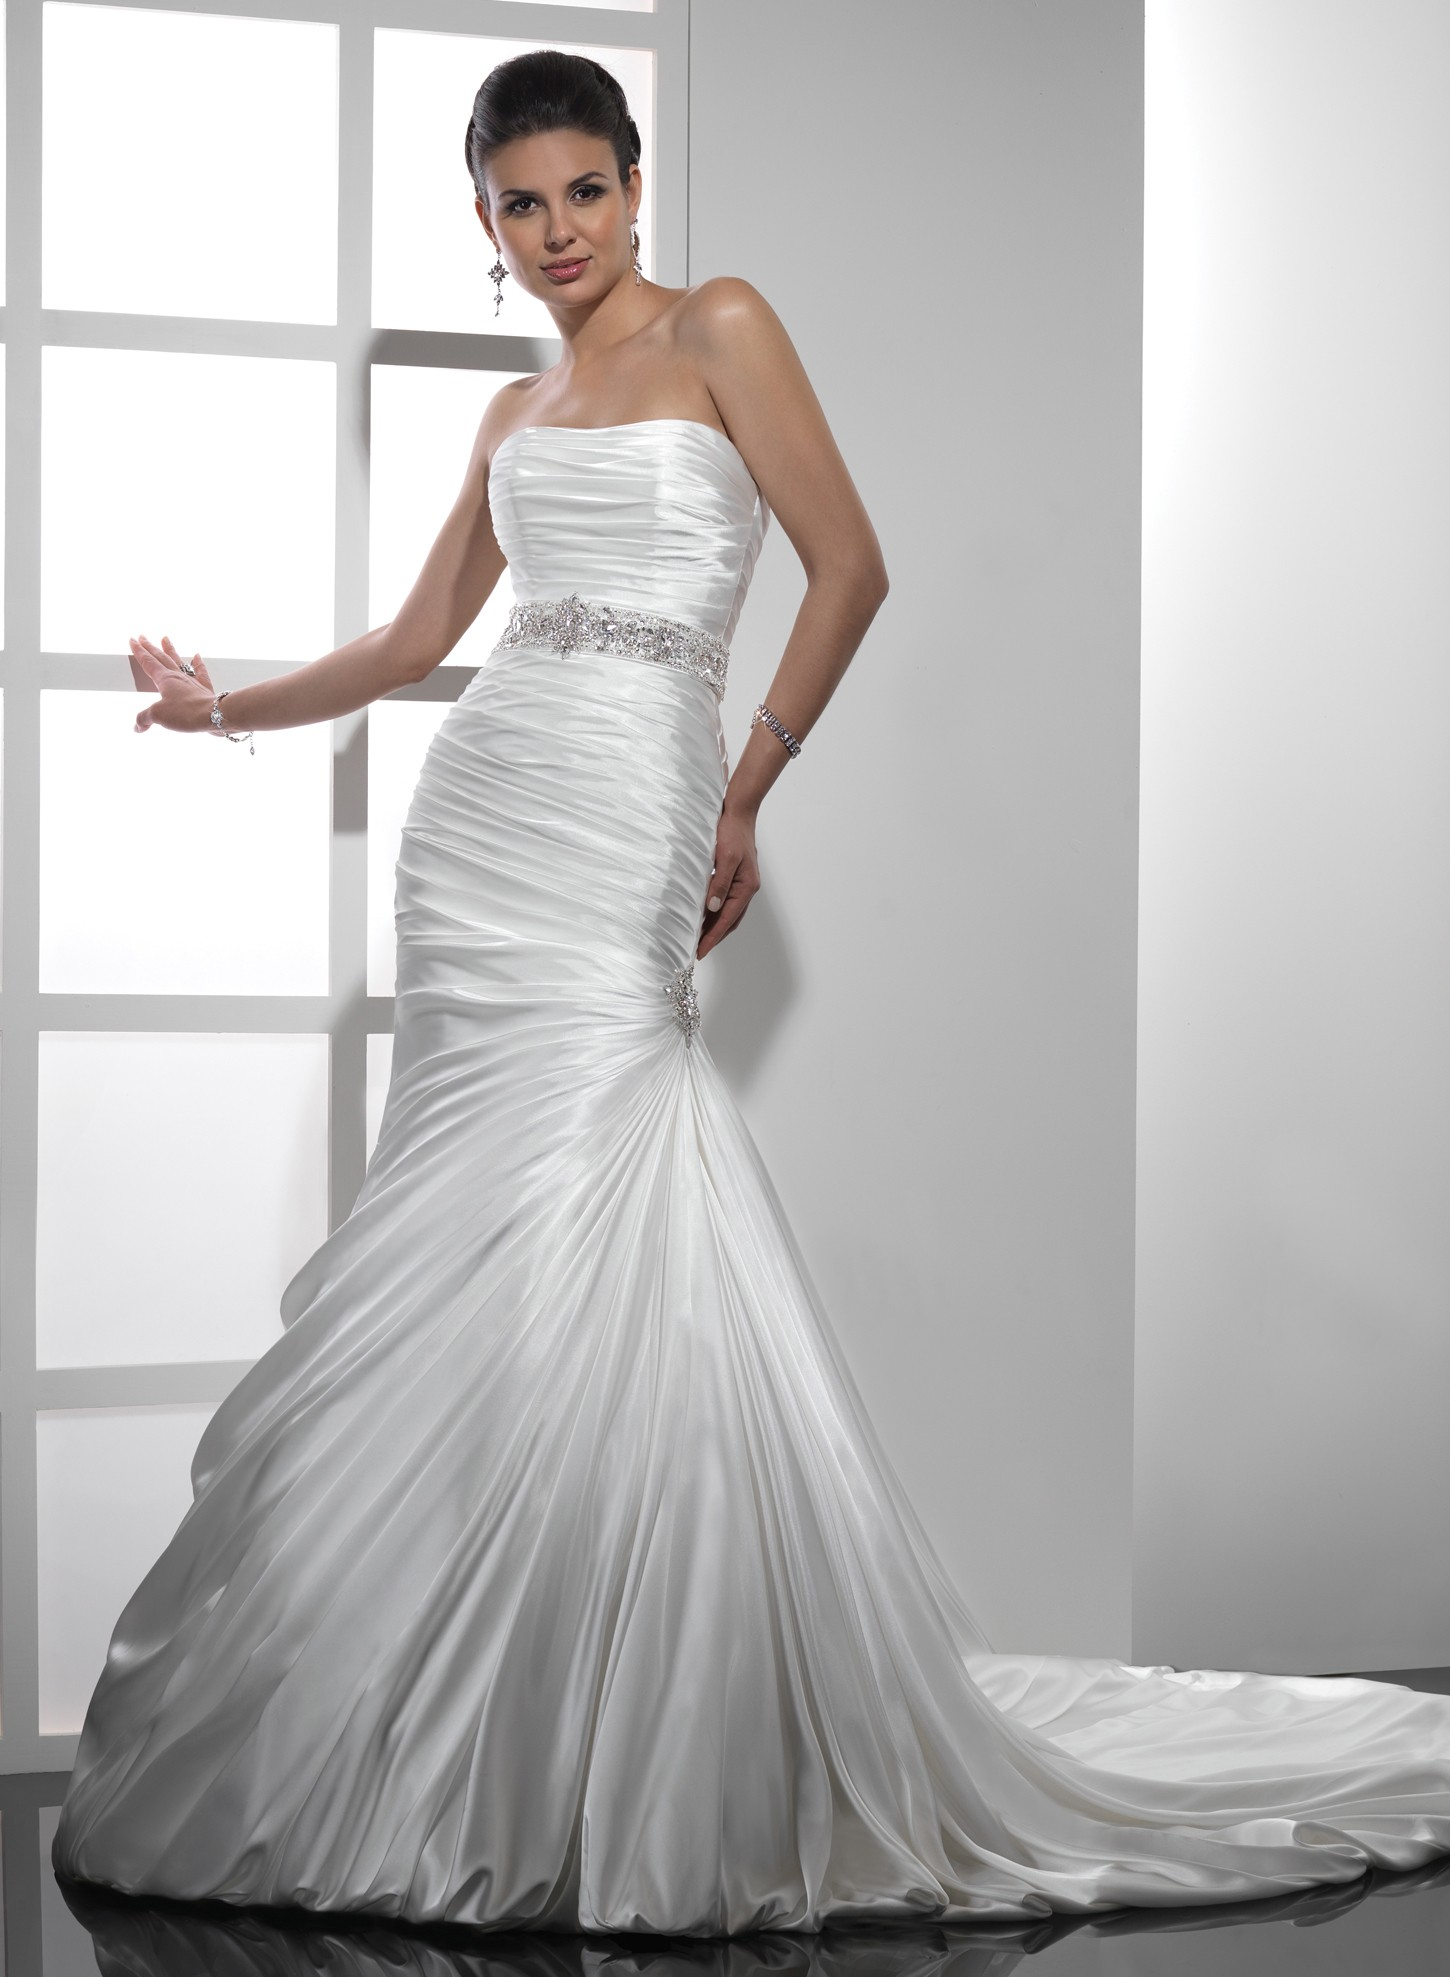 7 stylish strapless wedding dresses for your big day wedding dresses strapless strapless wedding dresses 06